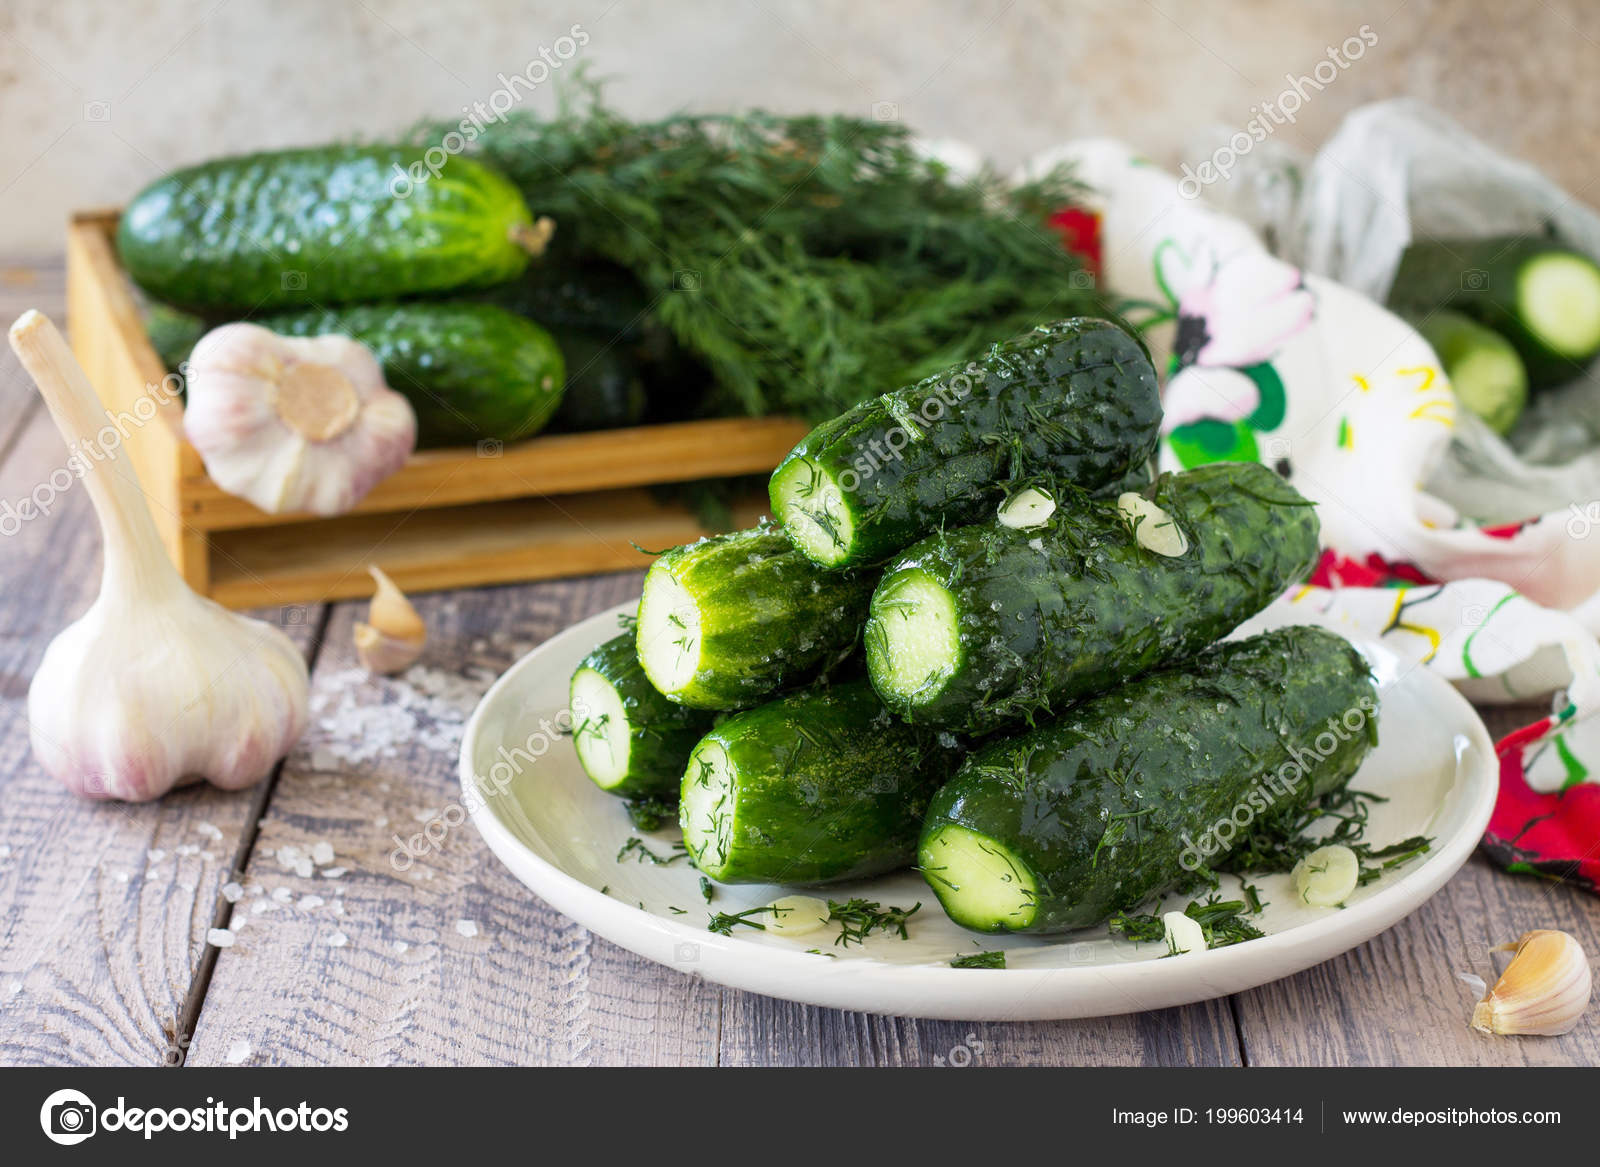 Lightly salted cucumbers in a package quickly and easily